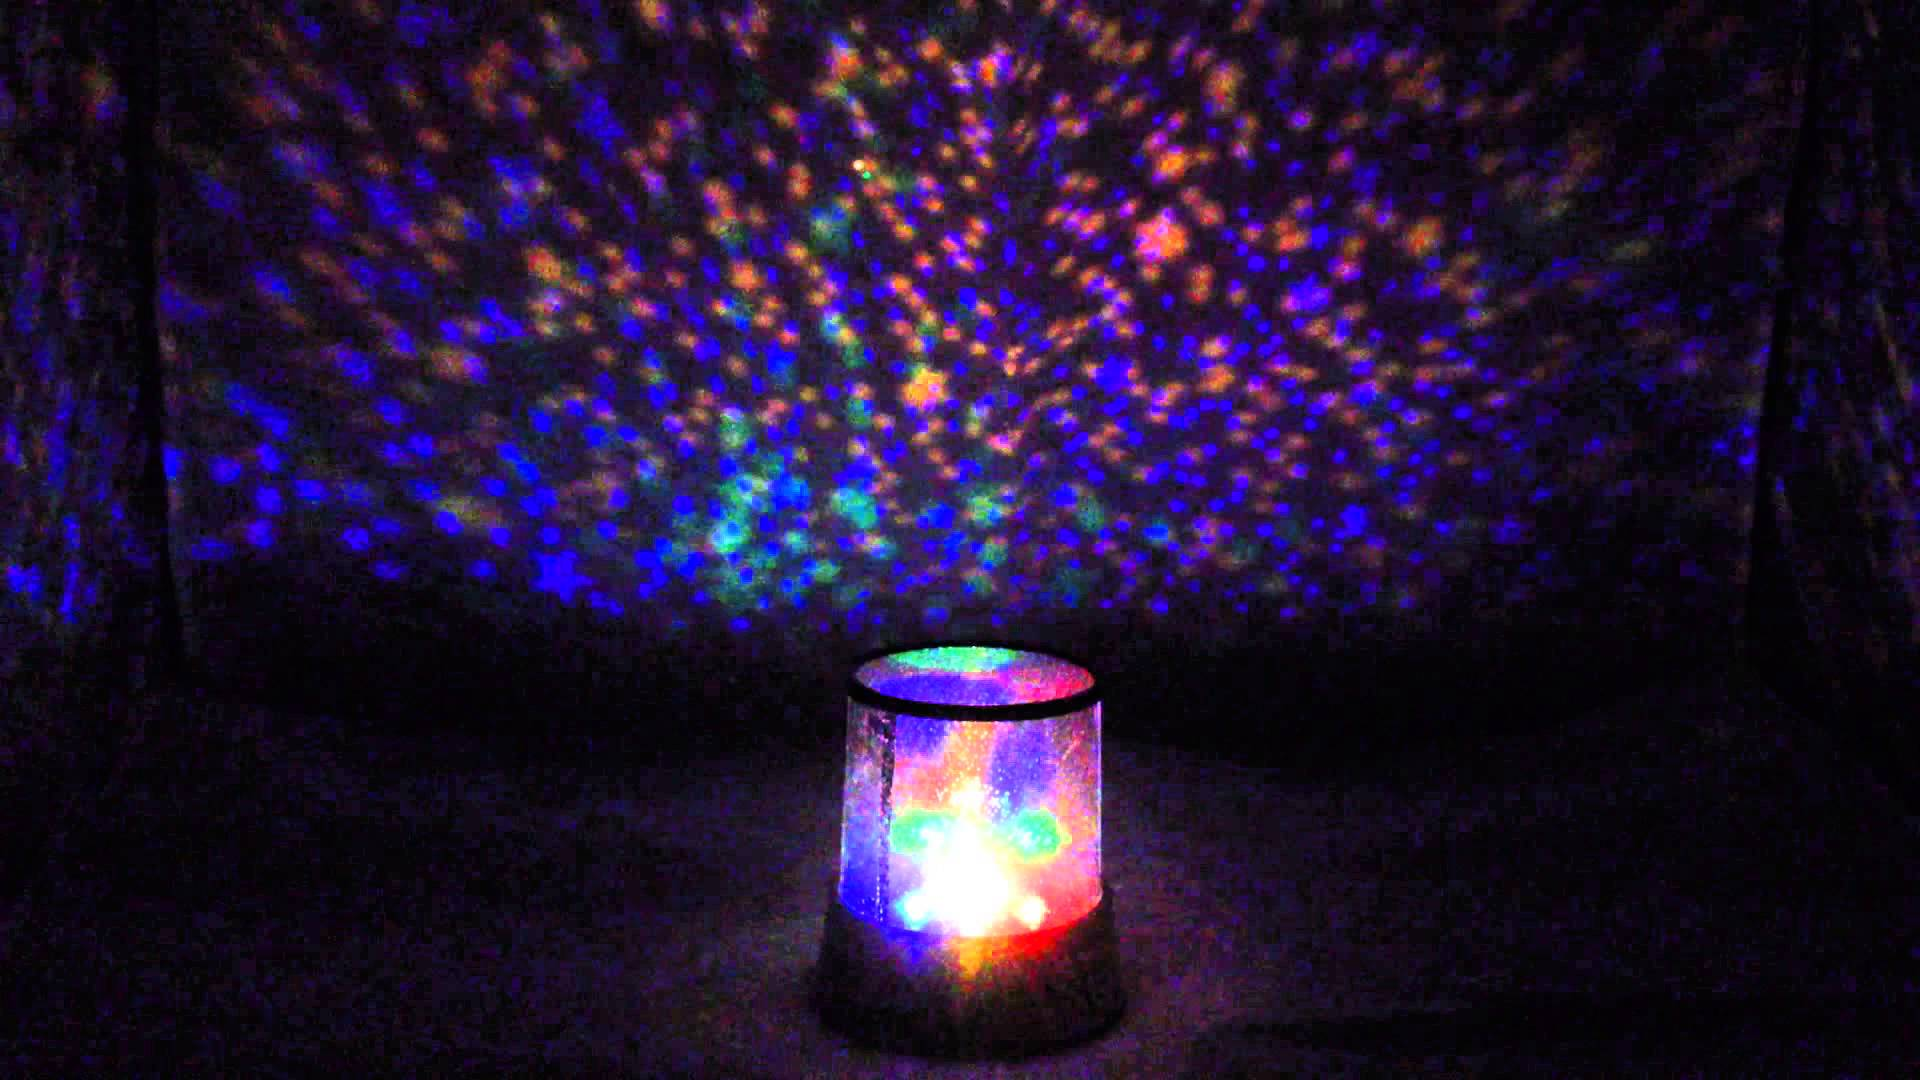 Night lamp wallpapers high quality download free - Light night wallpaper ...